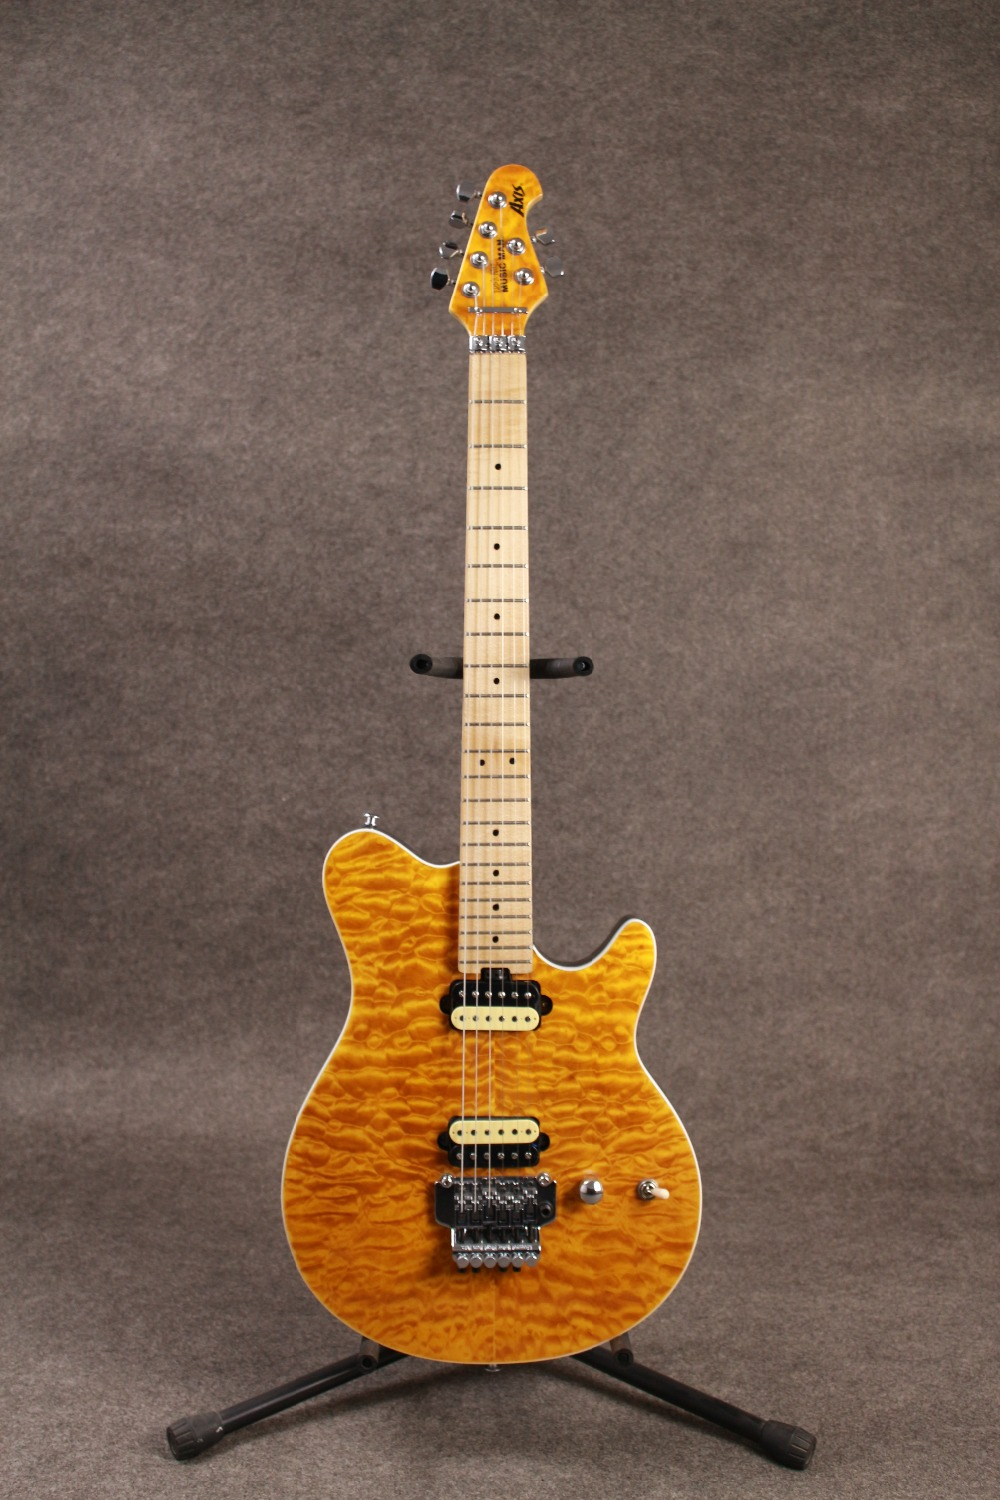 Ernie Ball Music man Axe eletric guitare qualité AAAAA quilted maple top floyd rose pont